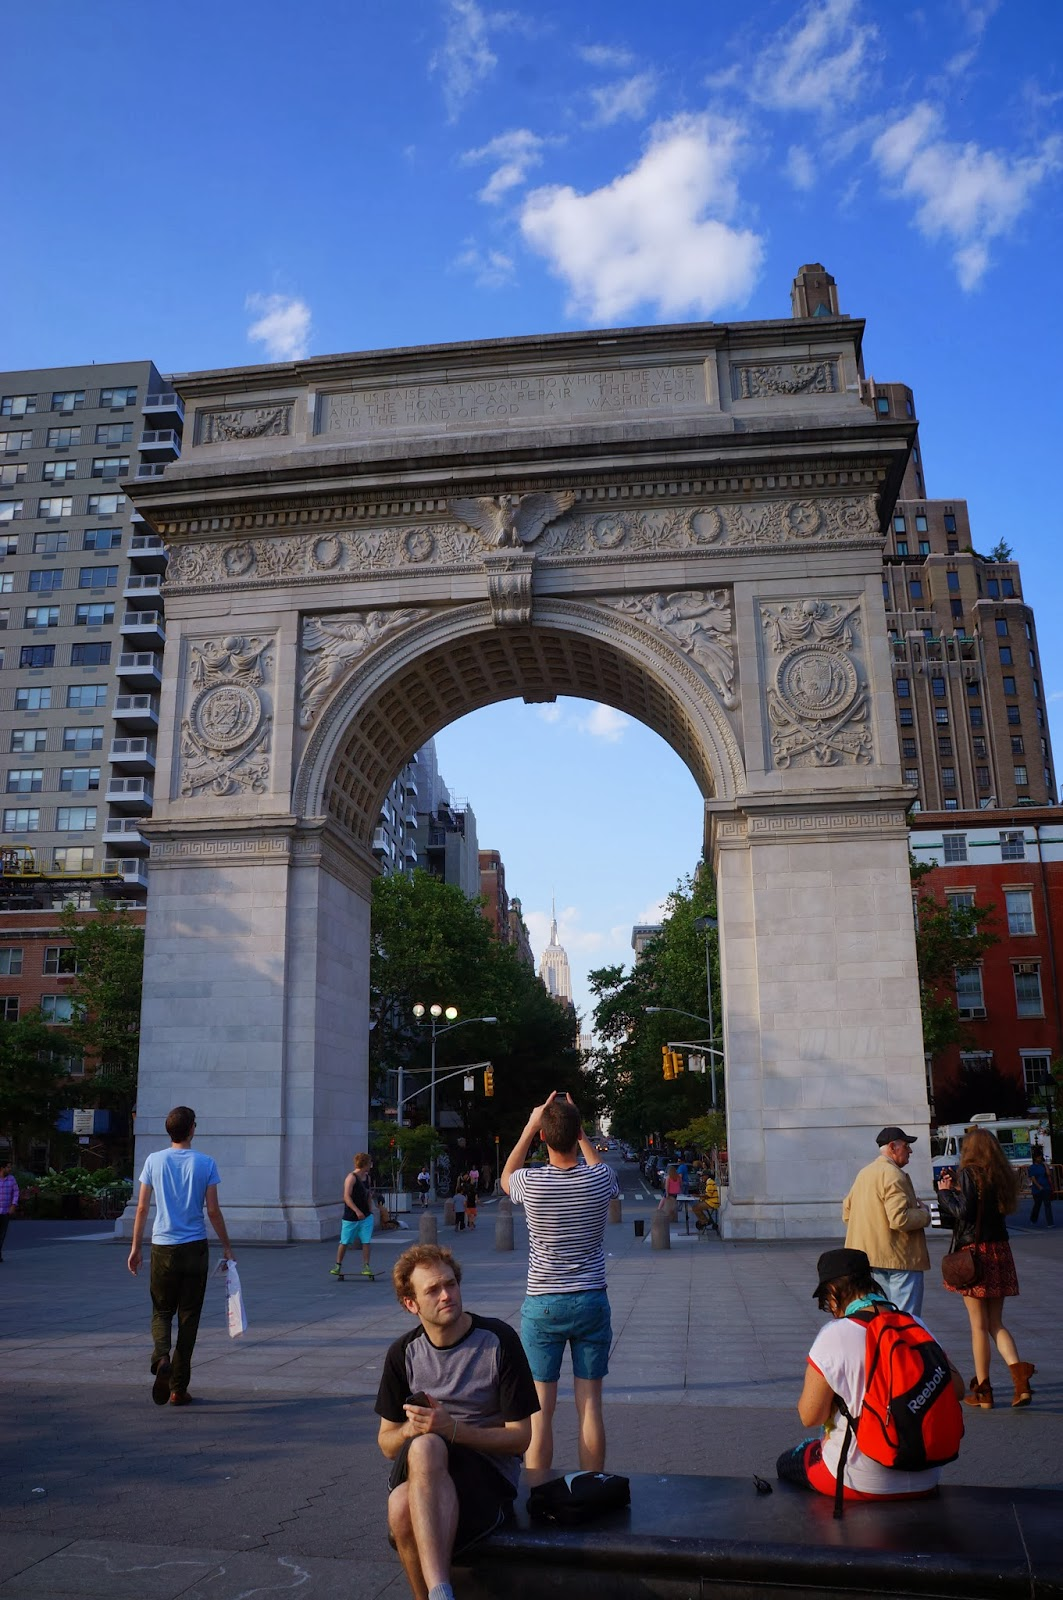 washington square park, culture, hipster, arch, NYC, New York, 10 free things to do, free things to do in NYC, travel, New York, explore, adventures, photography, usa, tourism, tourists, nyu